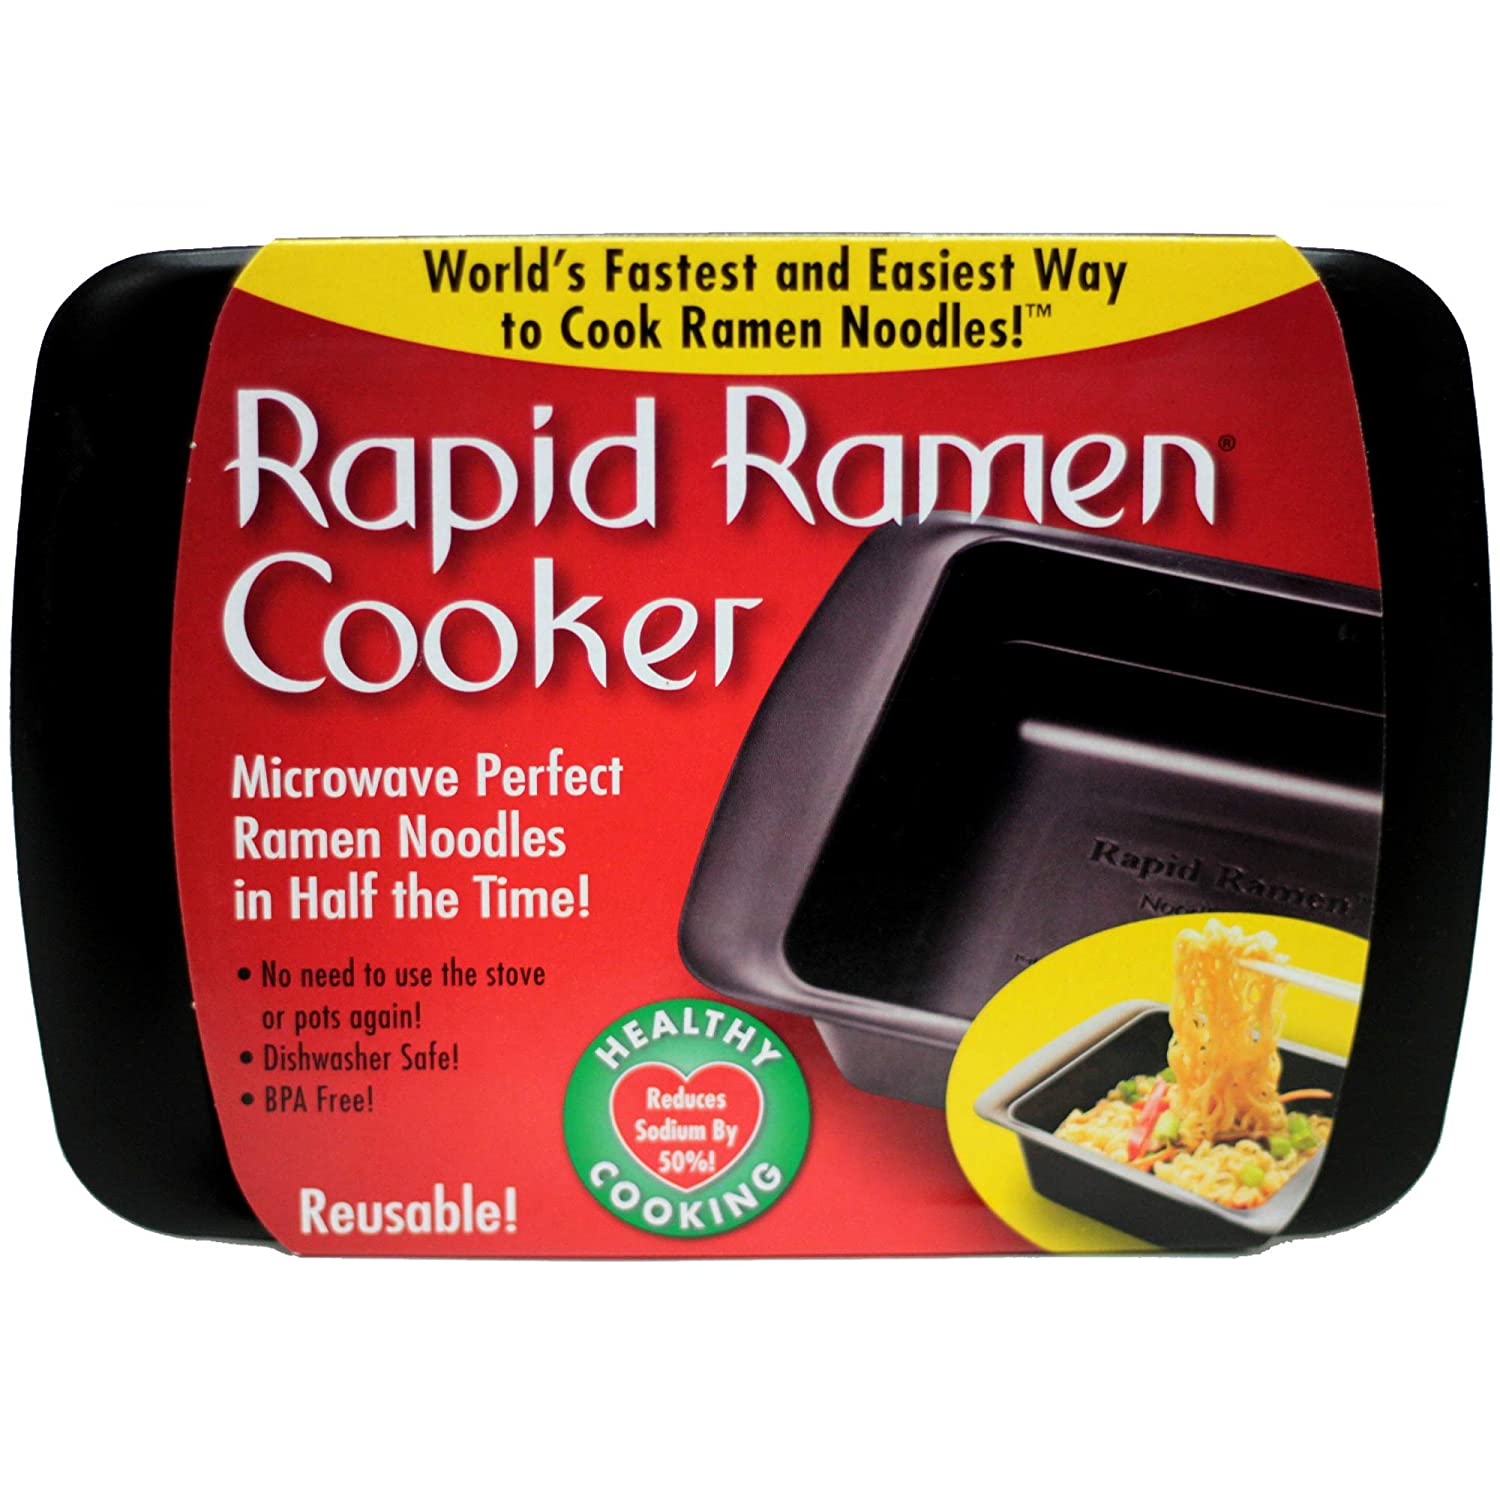 Rapid Ramen Cooker - Microwave Ramen in 3 Minutes - BPA Free and Dishwasher Safe - Black